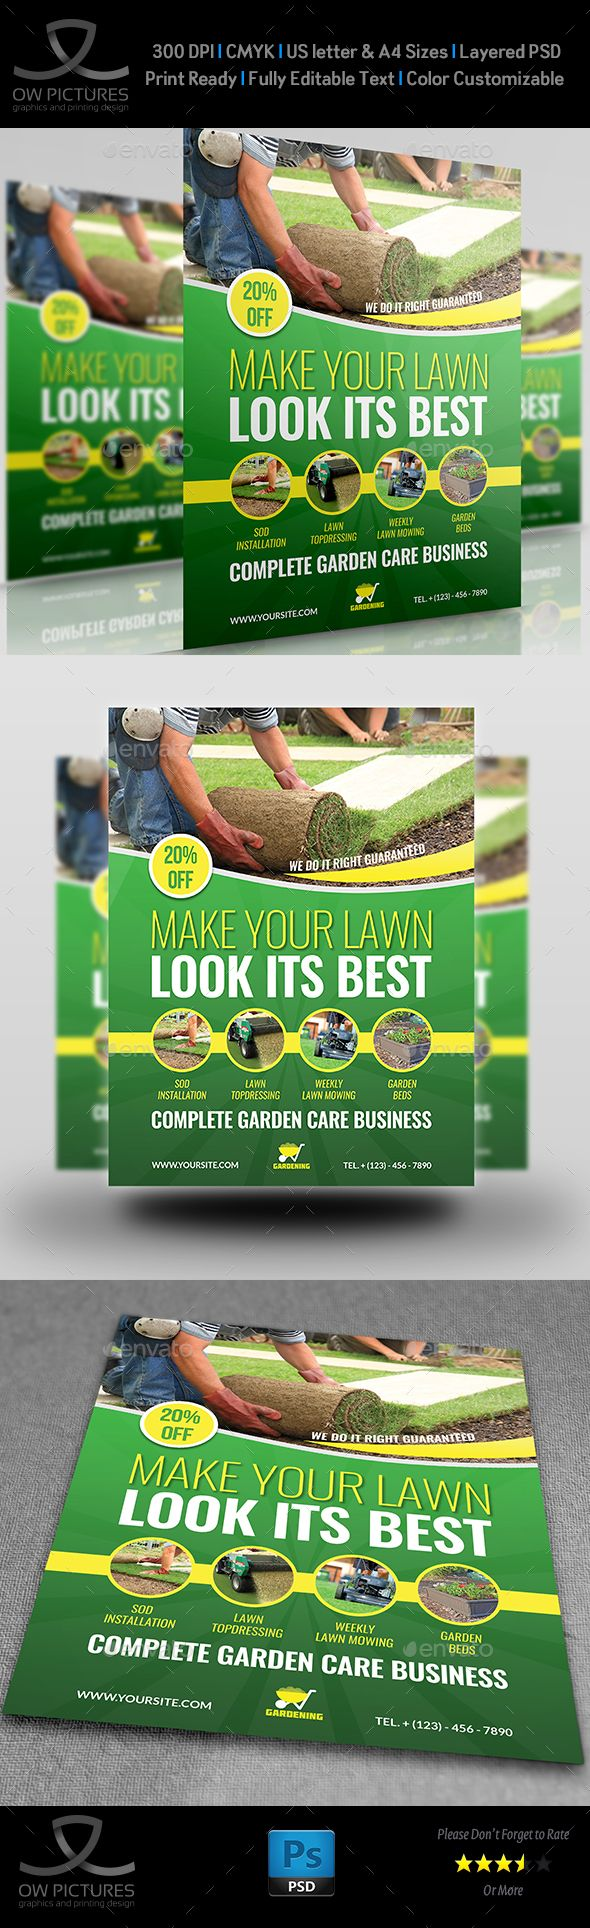 Garden Services Flyer Template Vol.4 - Flyers Print Templates